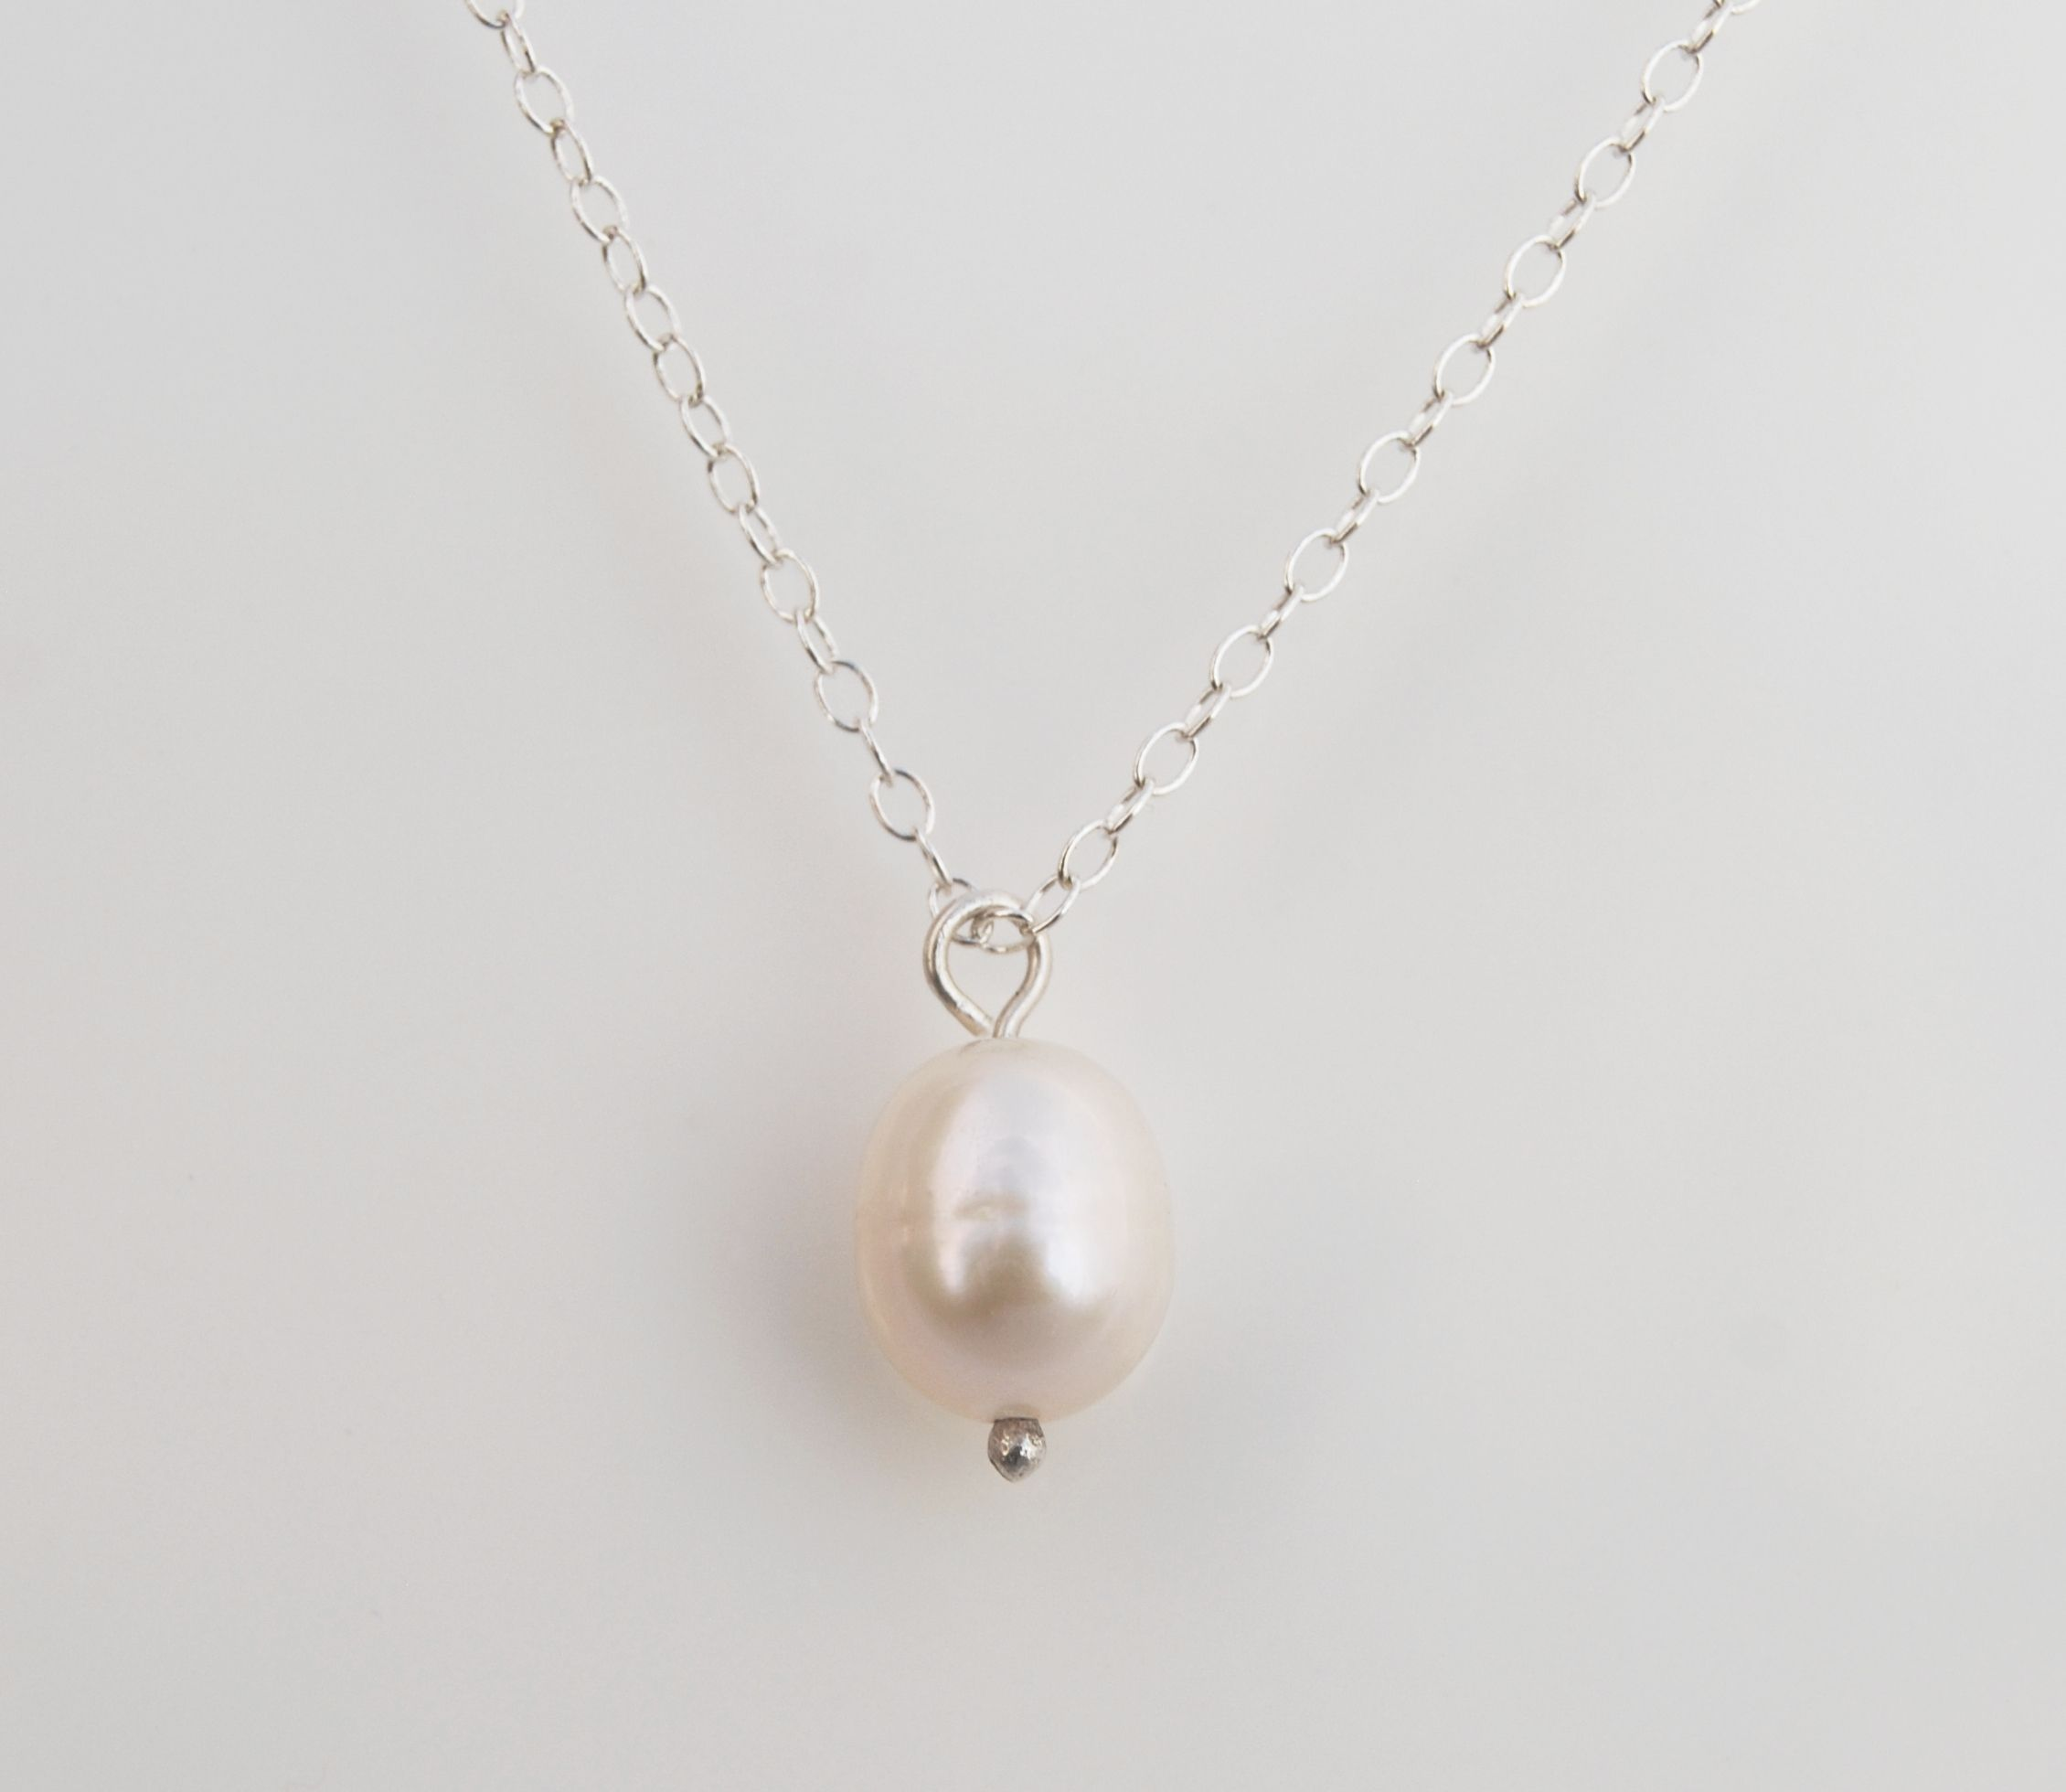 freshwater mm pearl necklace freshadama inch products neck single white